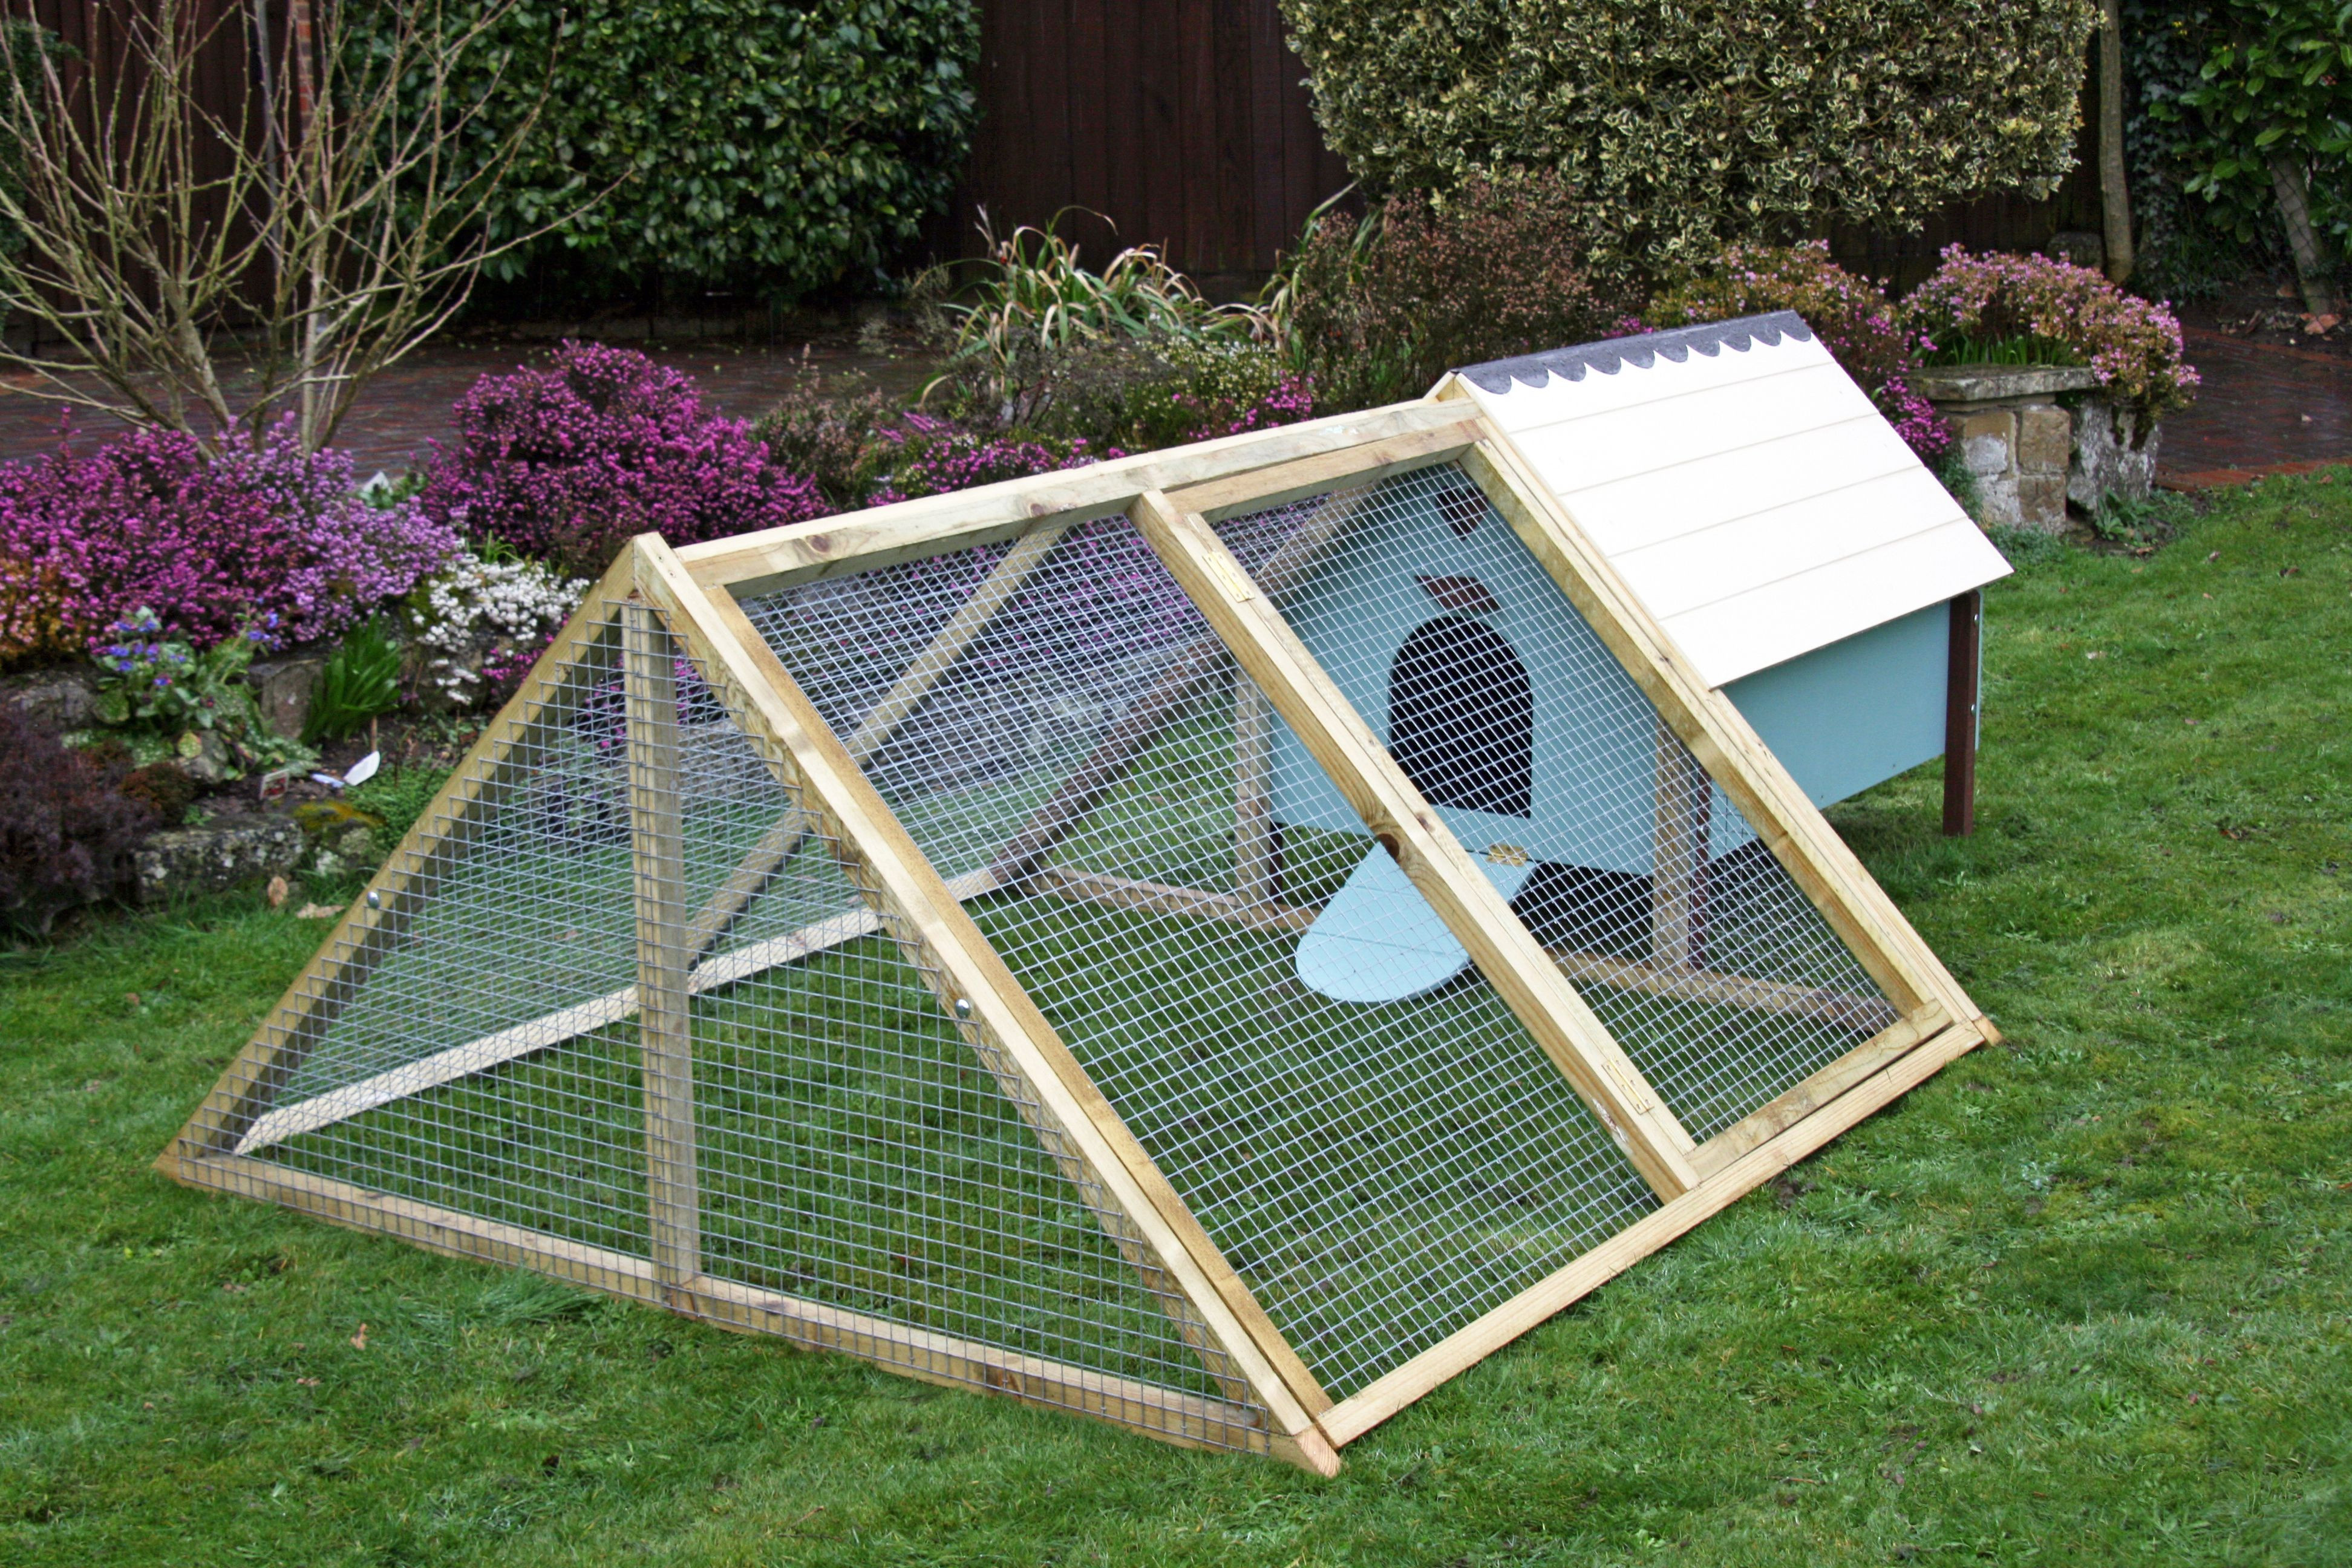 Best ideas about Easy DIY Chicken Coop Plans . Save or Pin DIY Chicken Coops Plans That Are Easy To Build Now.